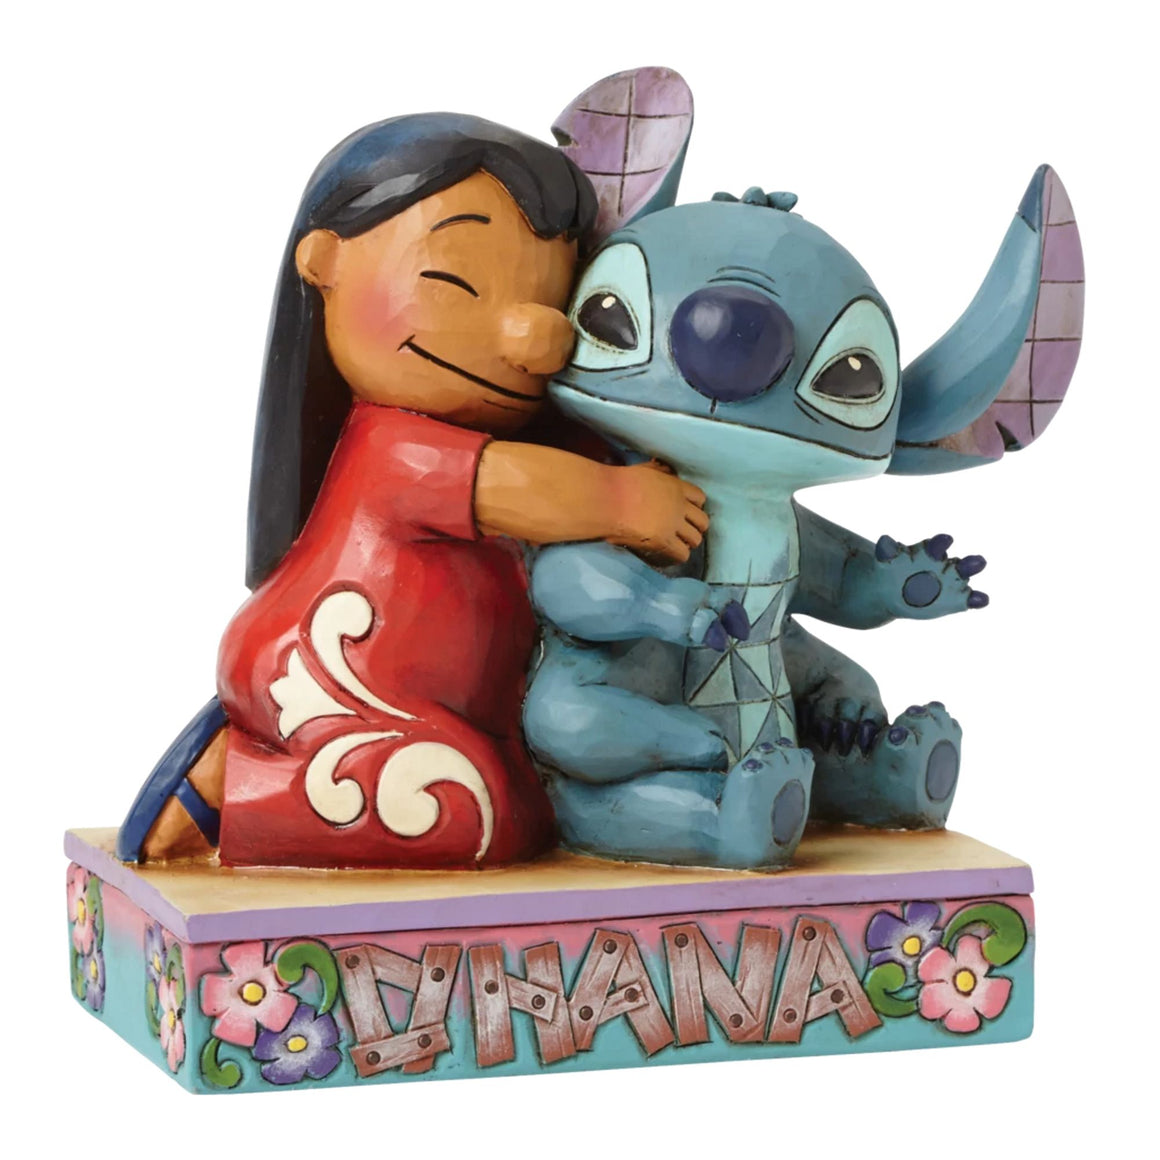 Disney Traditions Ohana Means Family - Lilo & Stitch Figurine